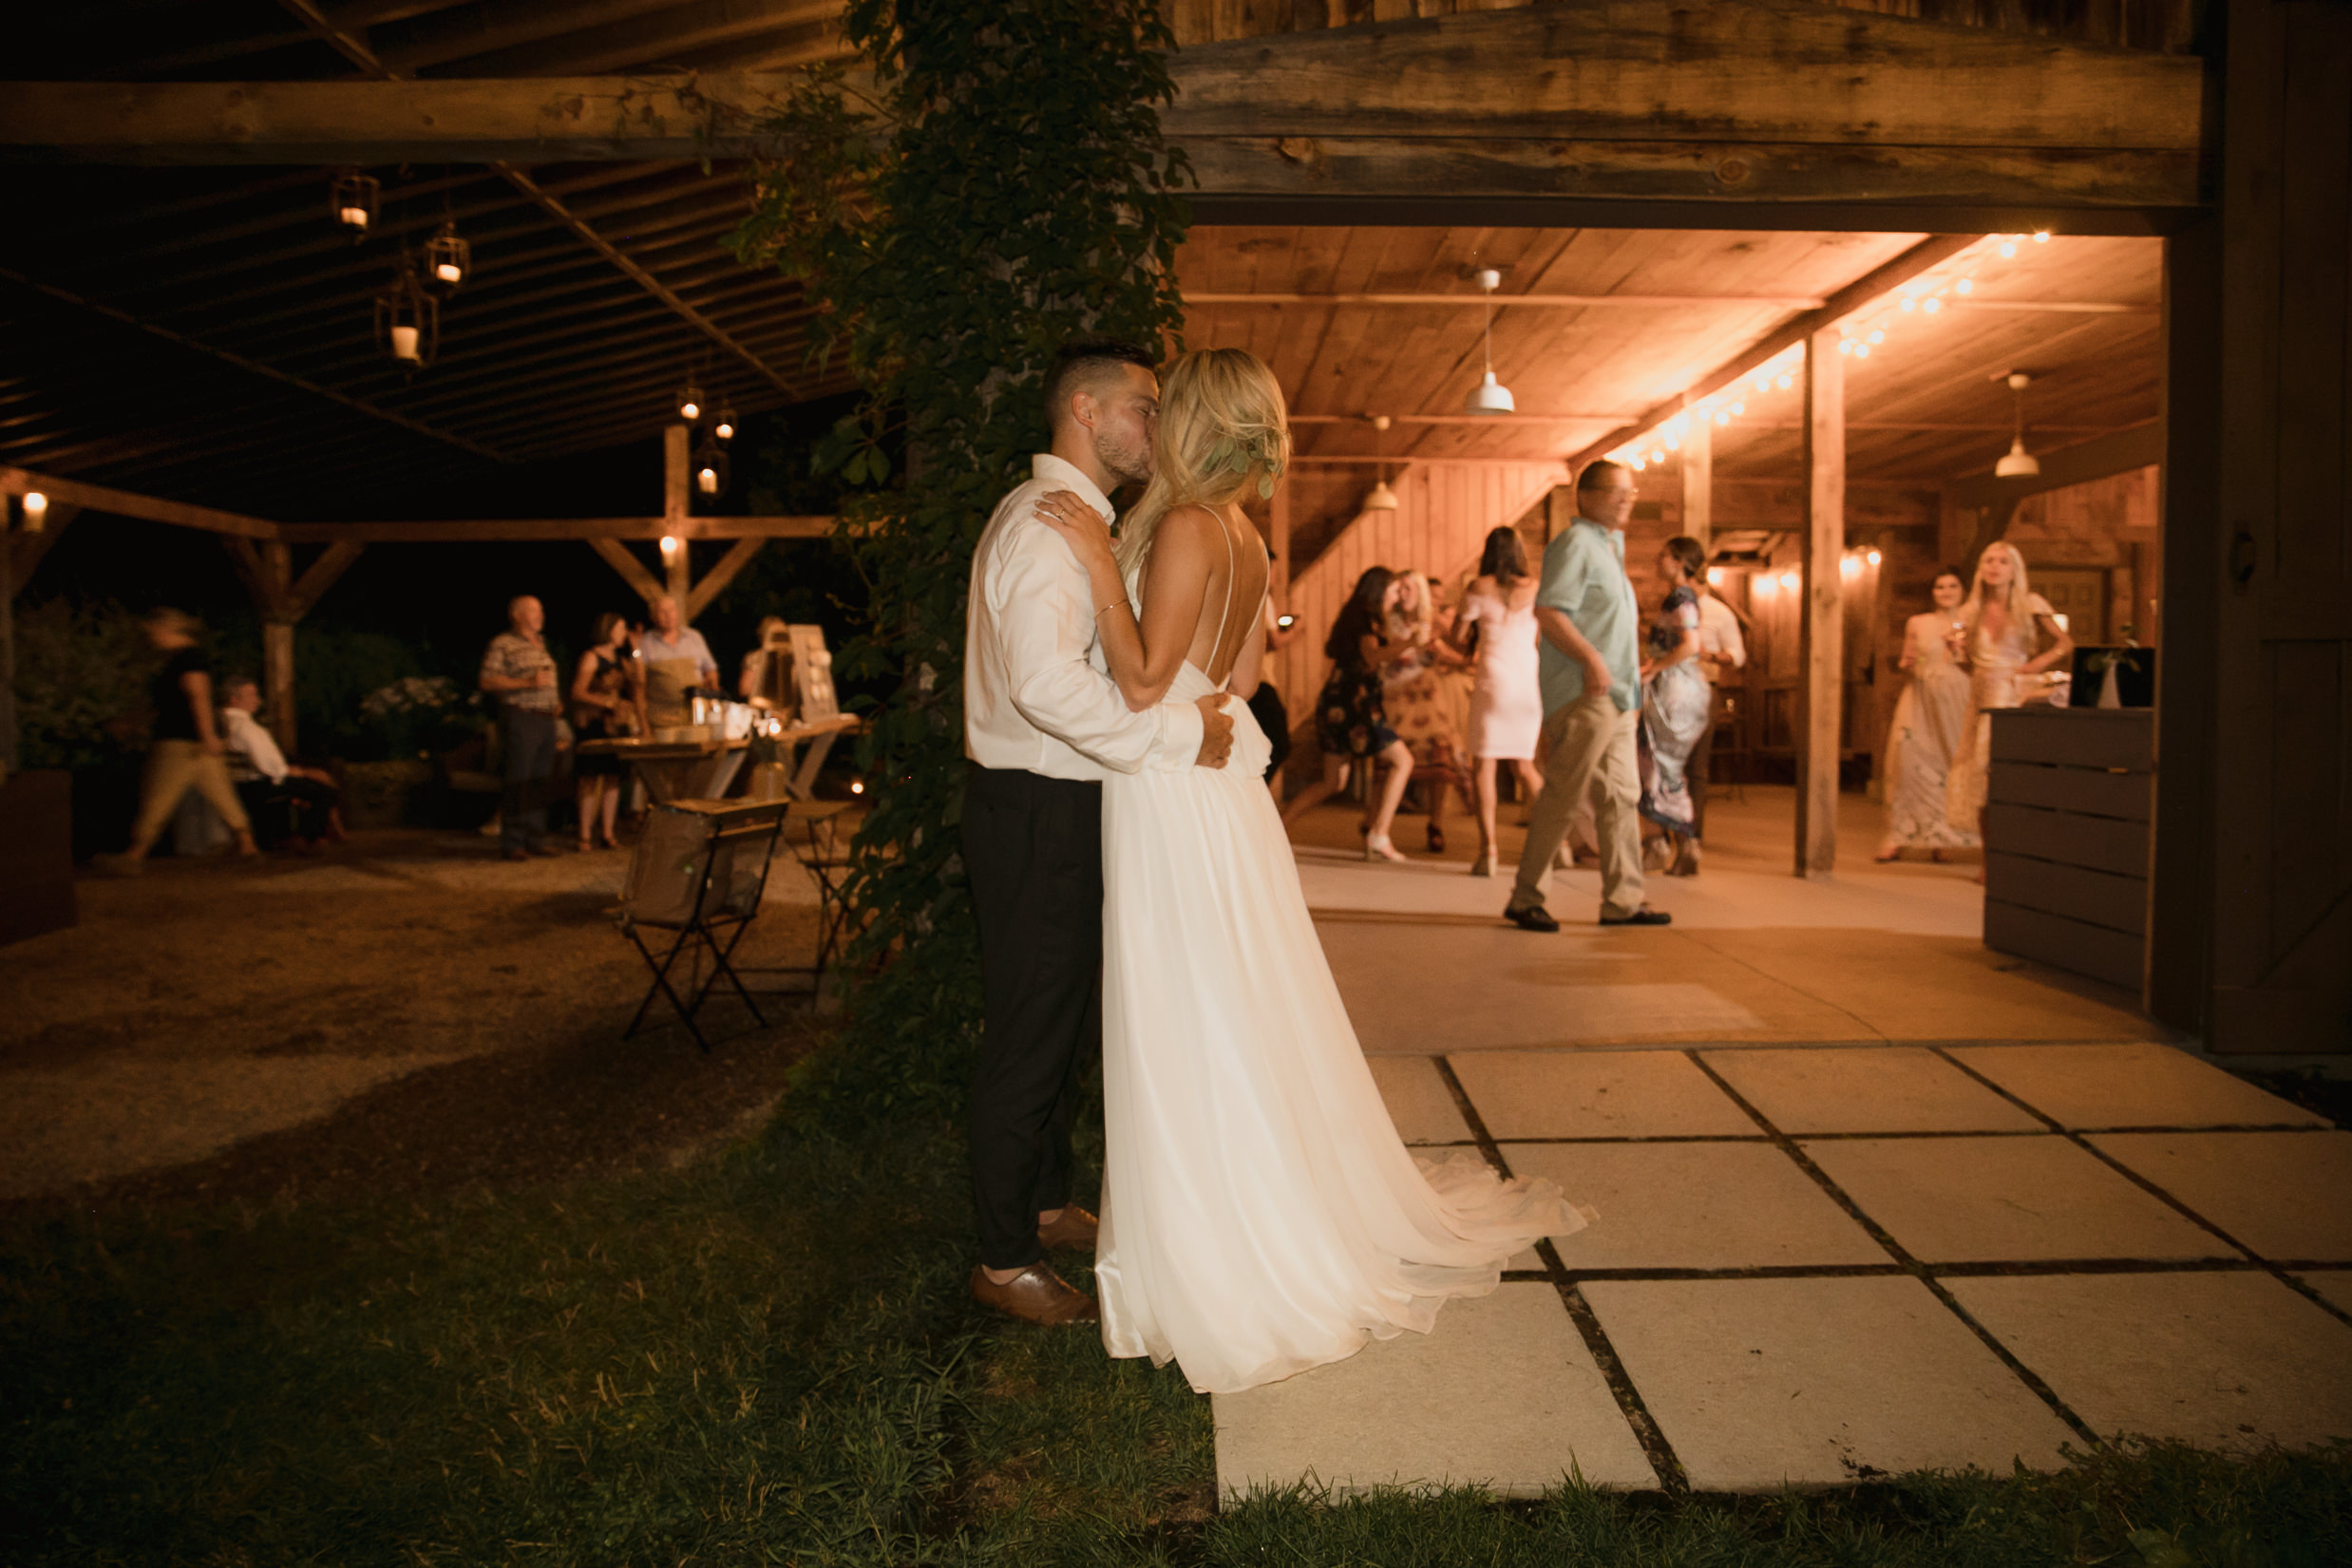 Wedding photo bride and groom reception candid kiss outside dance floor